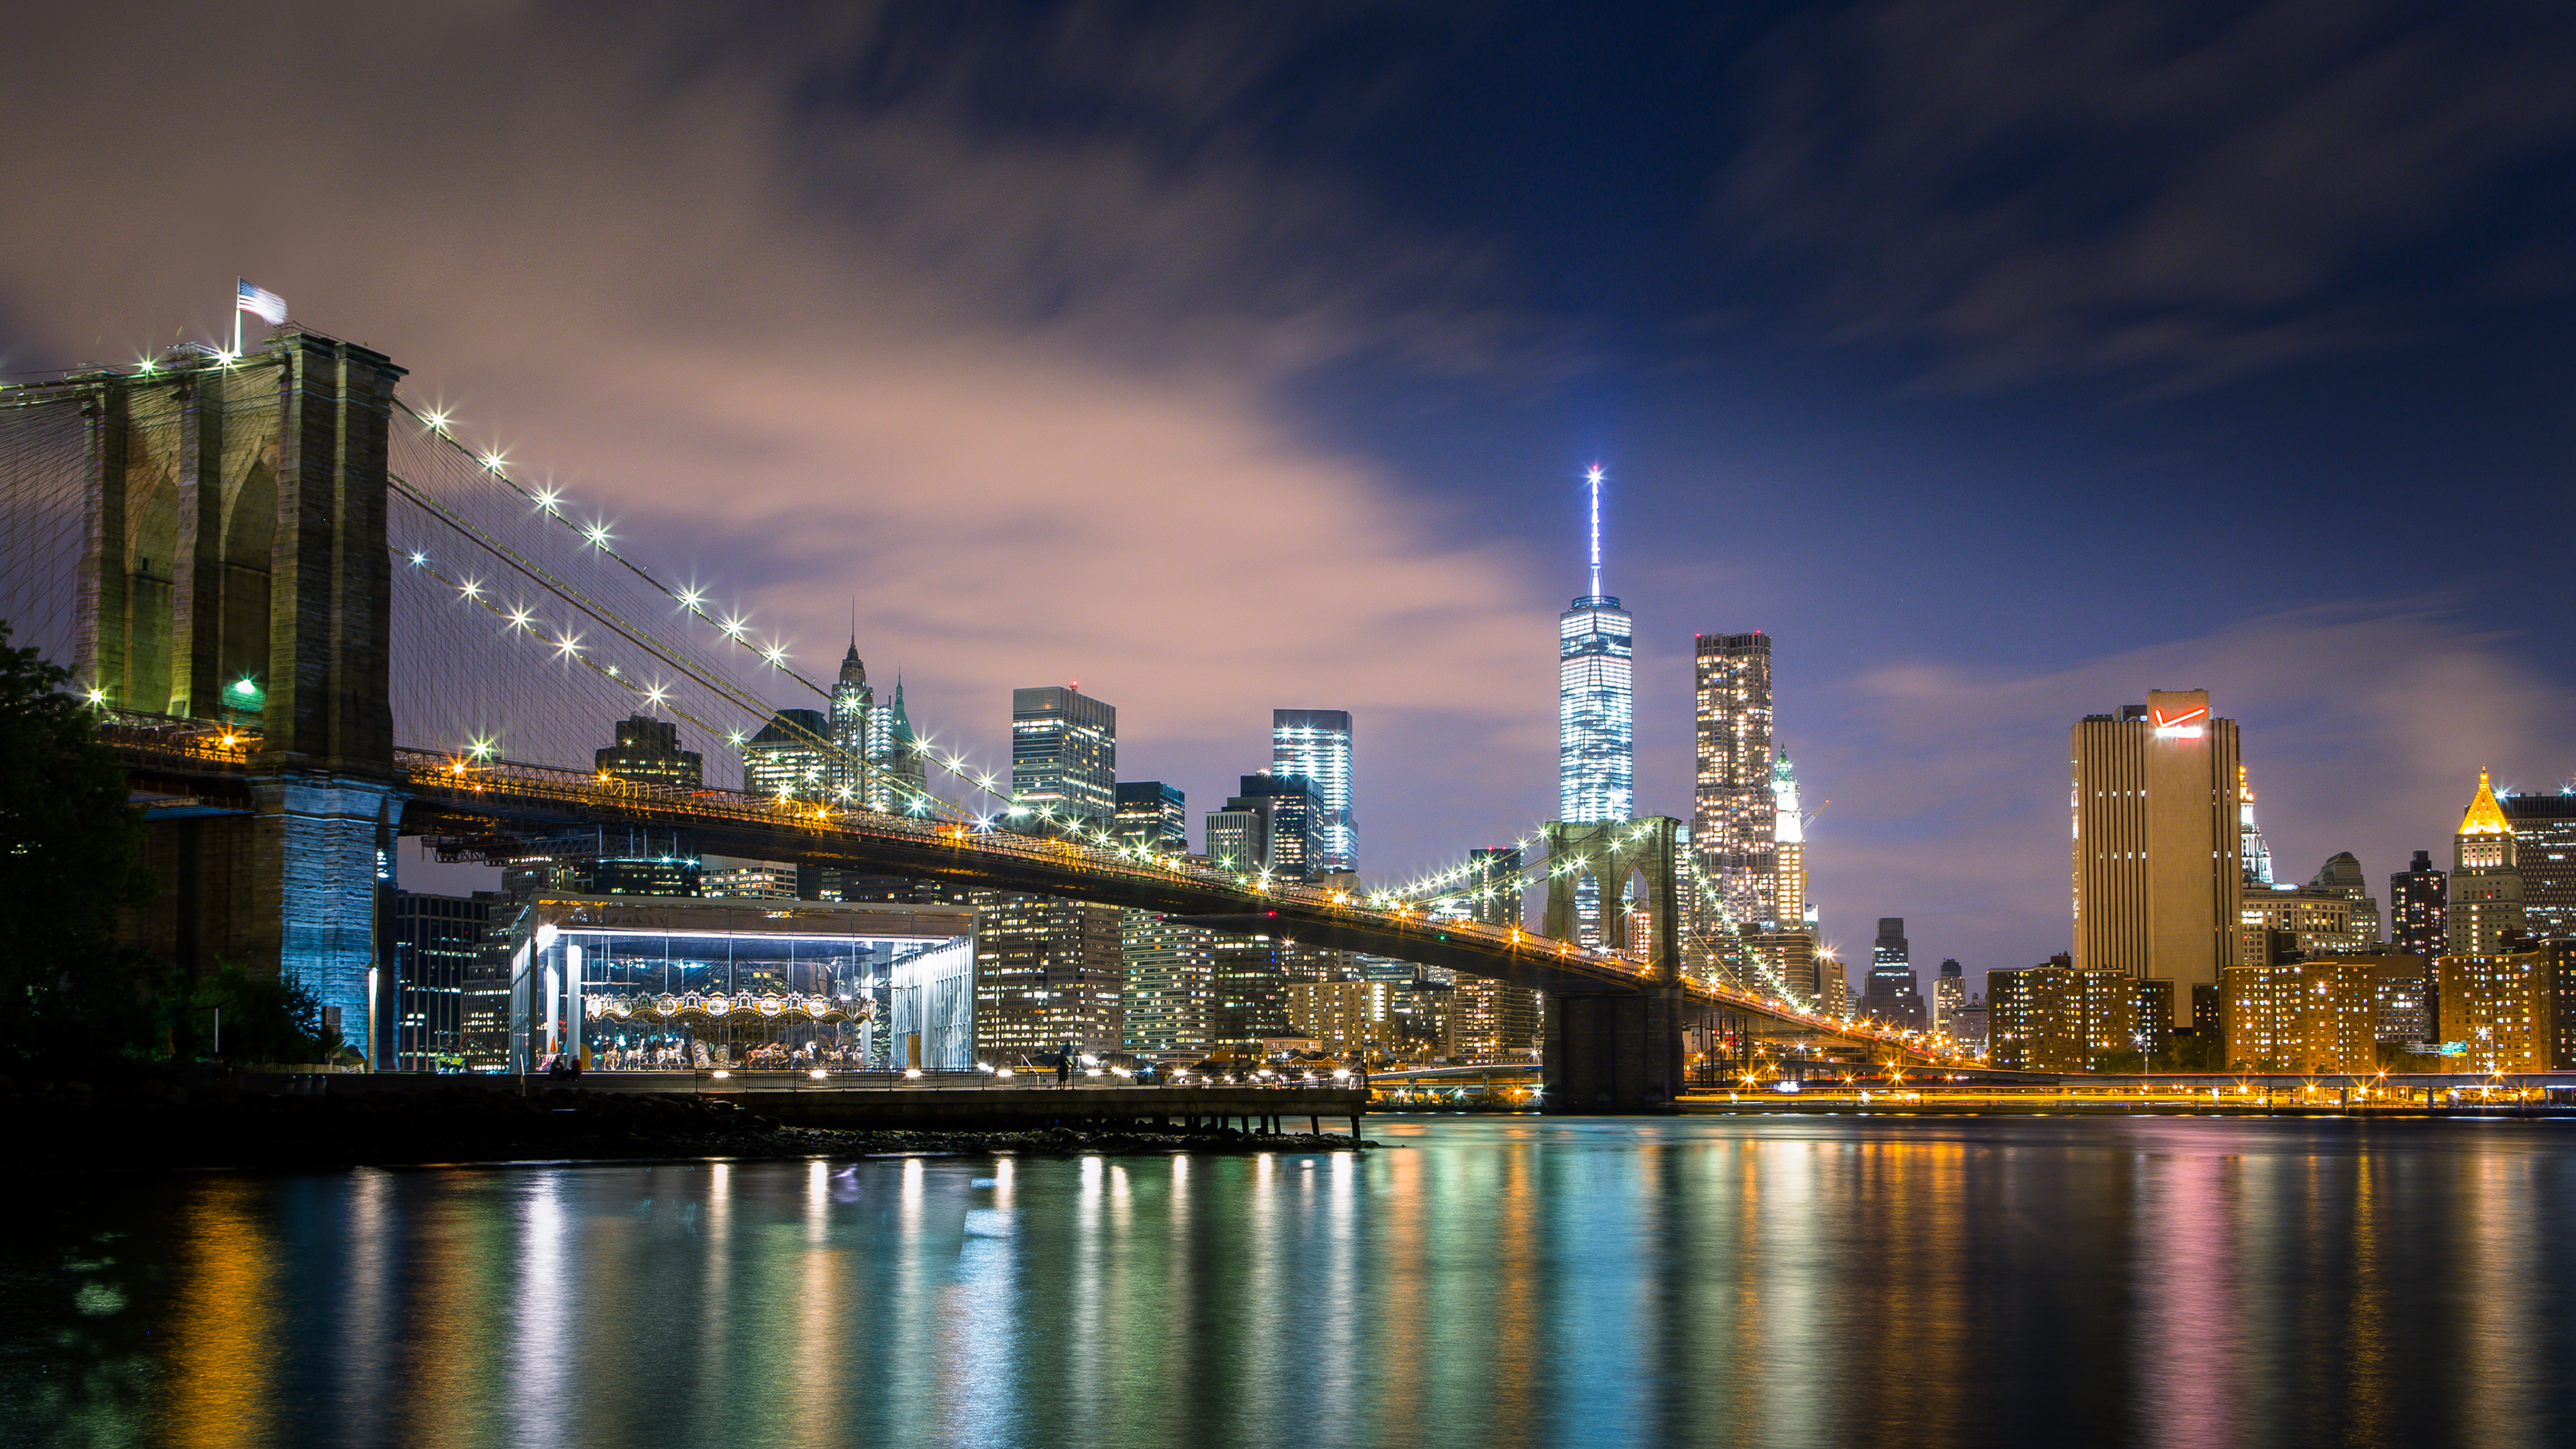 New York 4k Ultra HD Wallpaper and Background 3840x2160 3840x2160